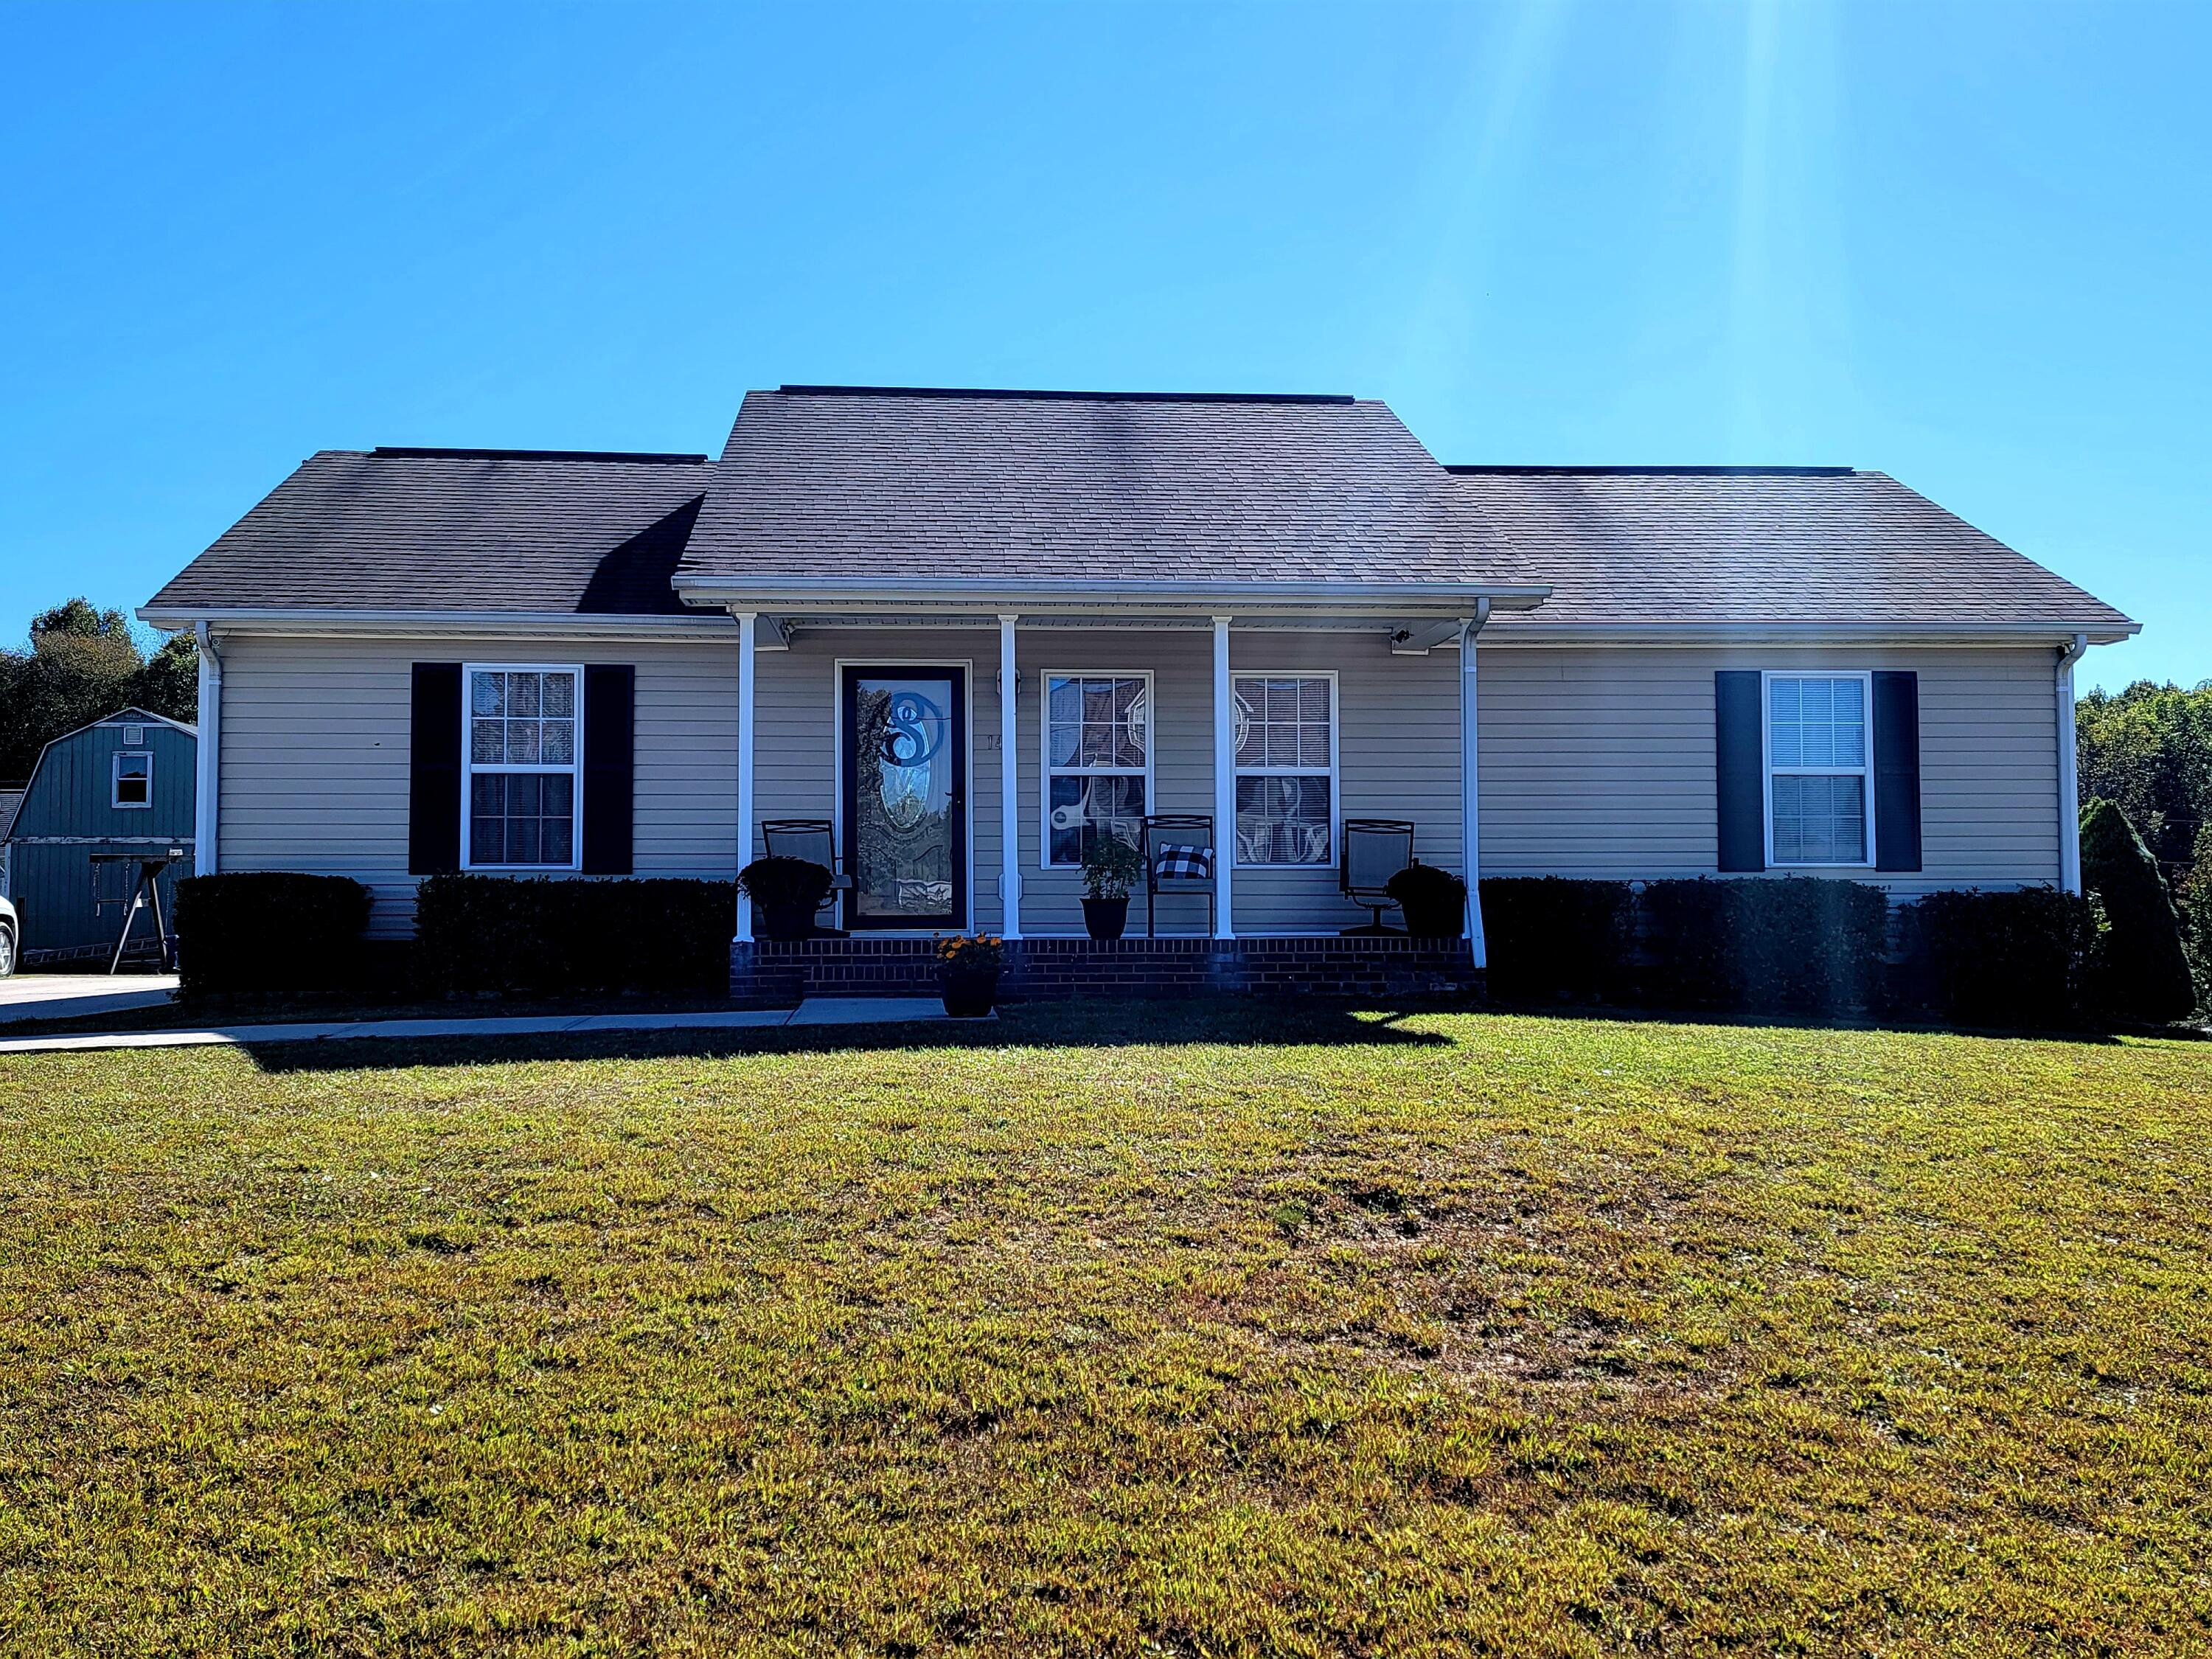 146 Cam Court Drive, Lily, KY 40740